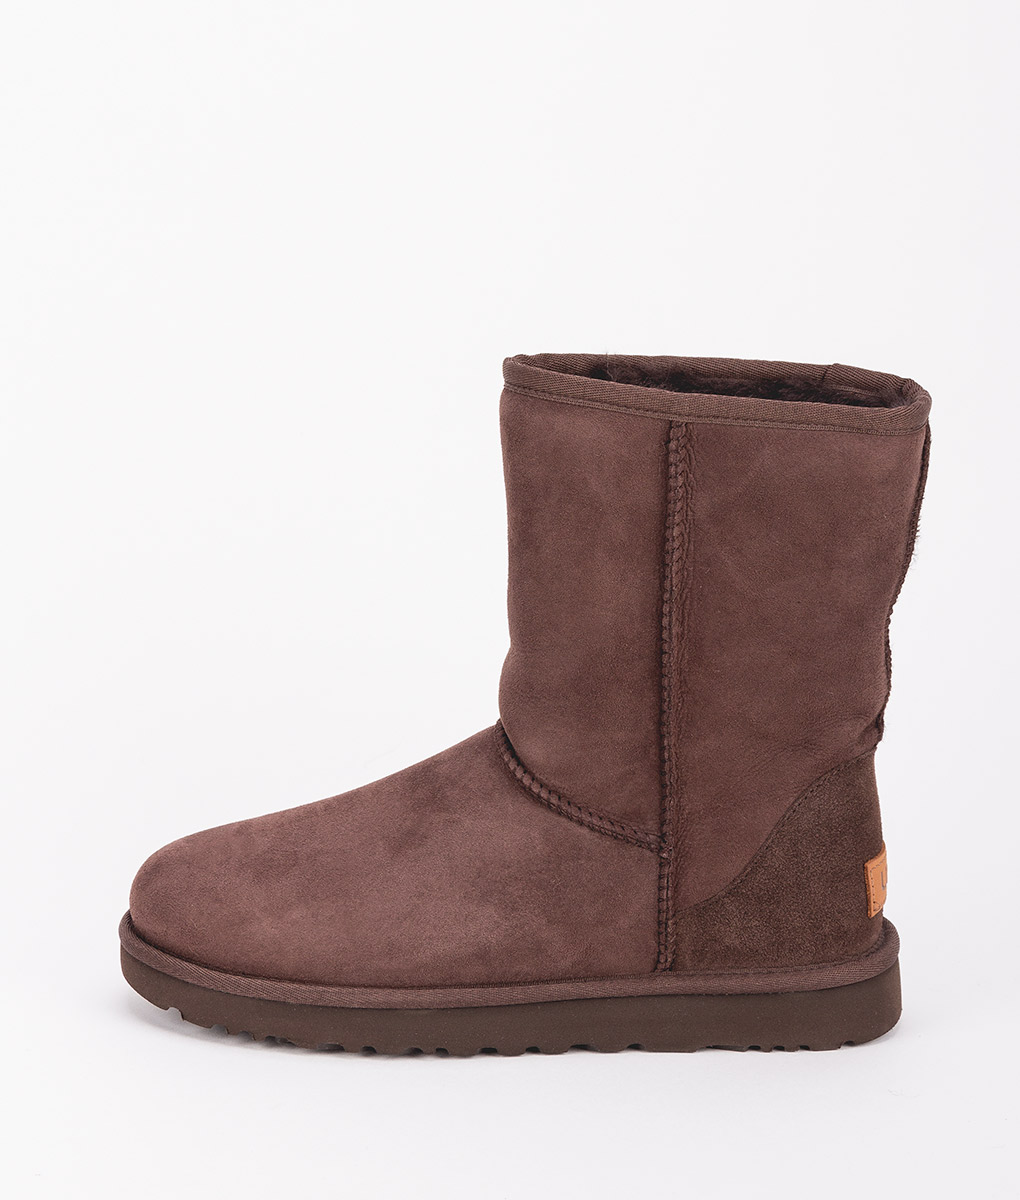 UGG Women Ankle Boots 1016223 CLASSIC SHORT II, Chocolate